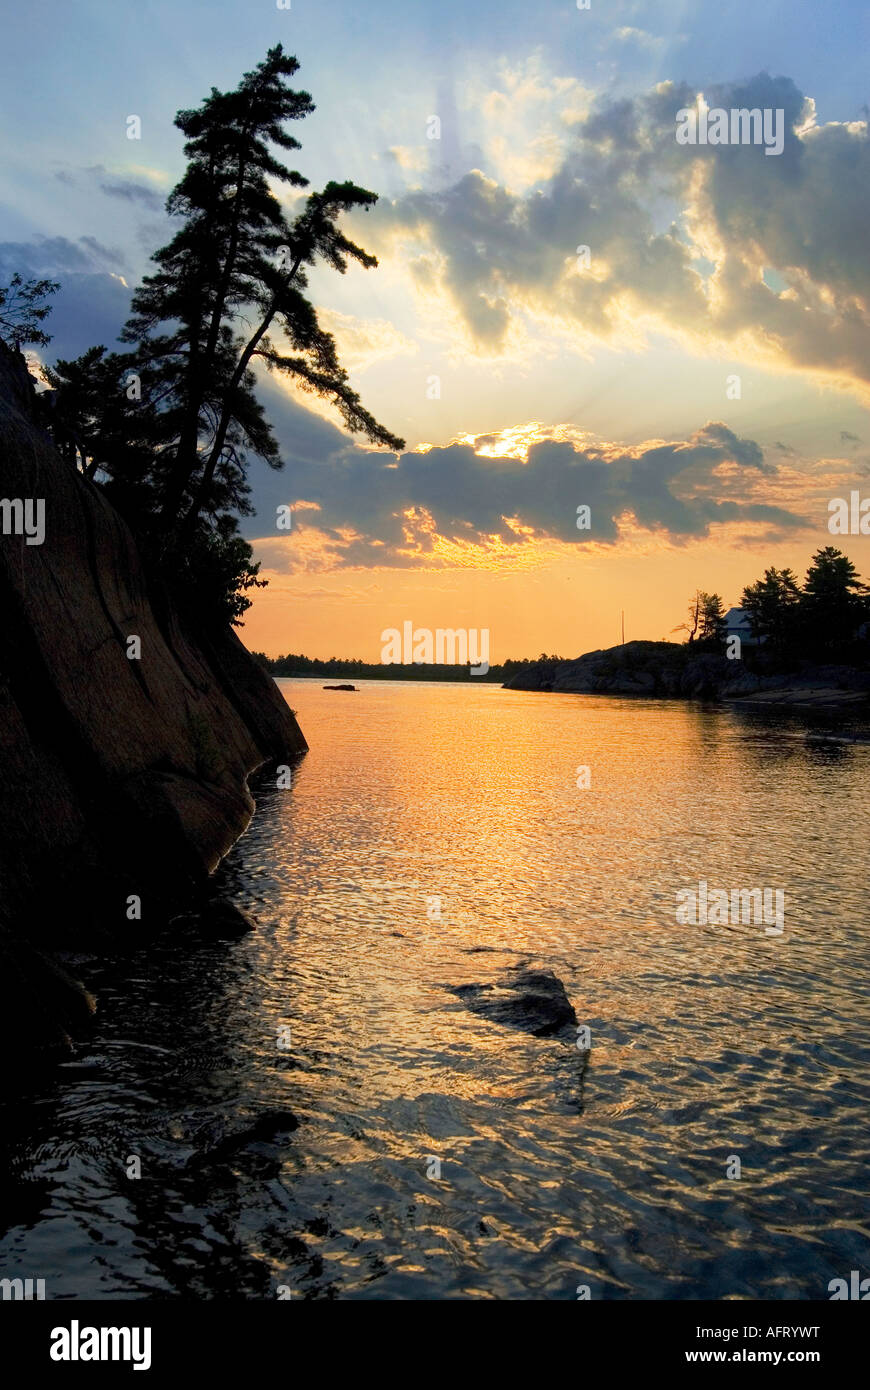 Sunrise in Ontario's cottage country - Stock Image